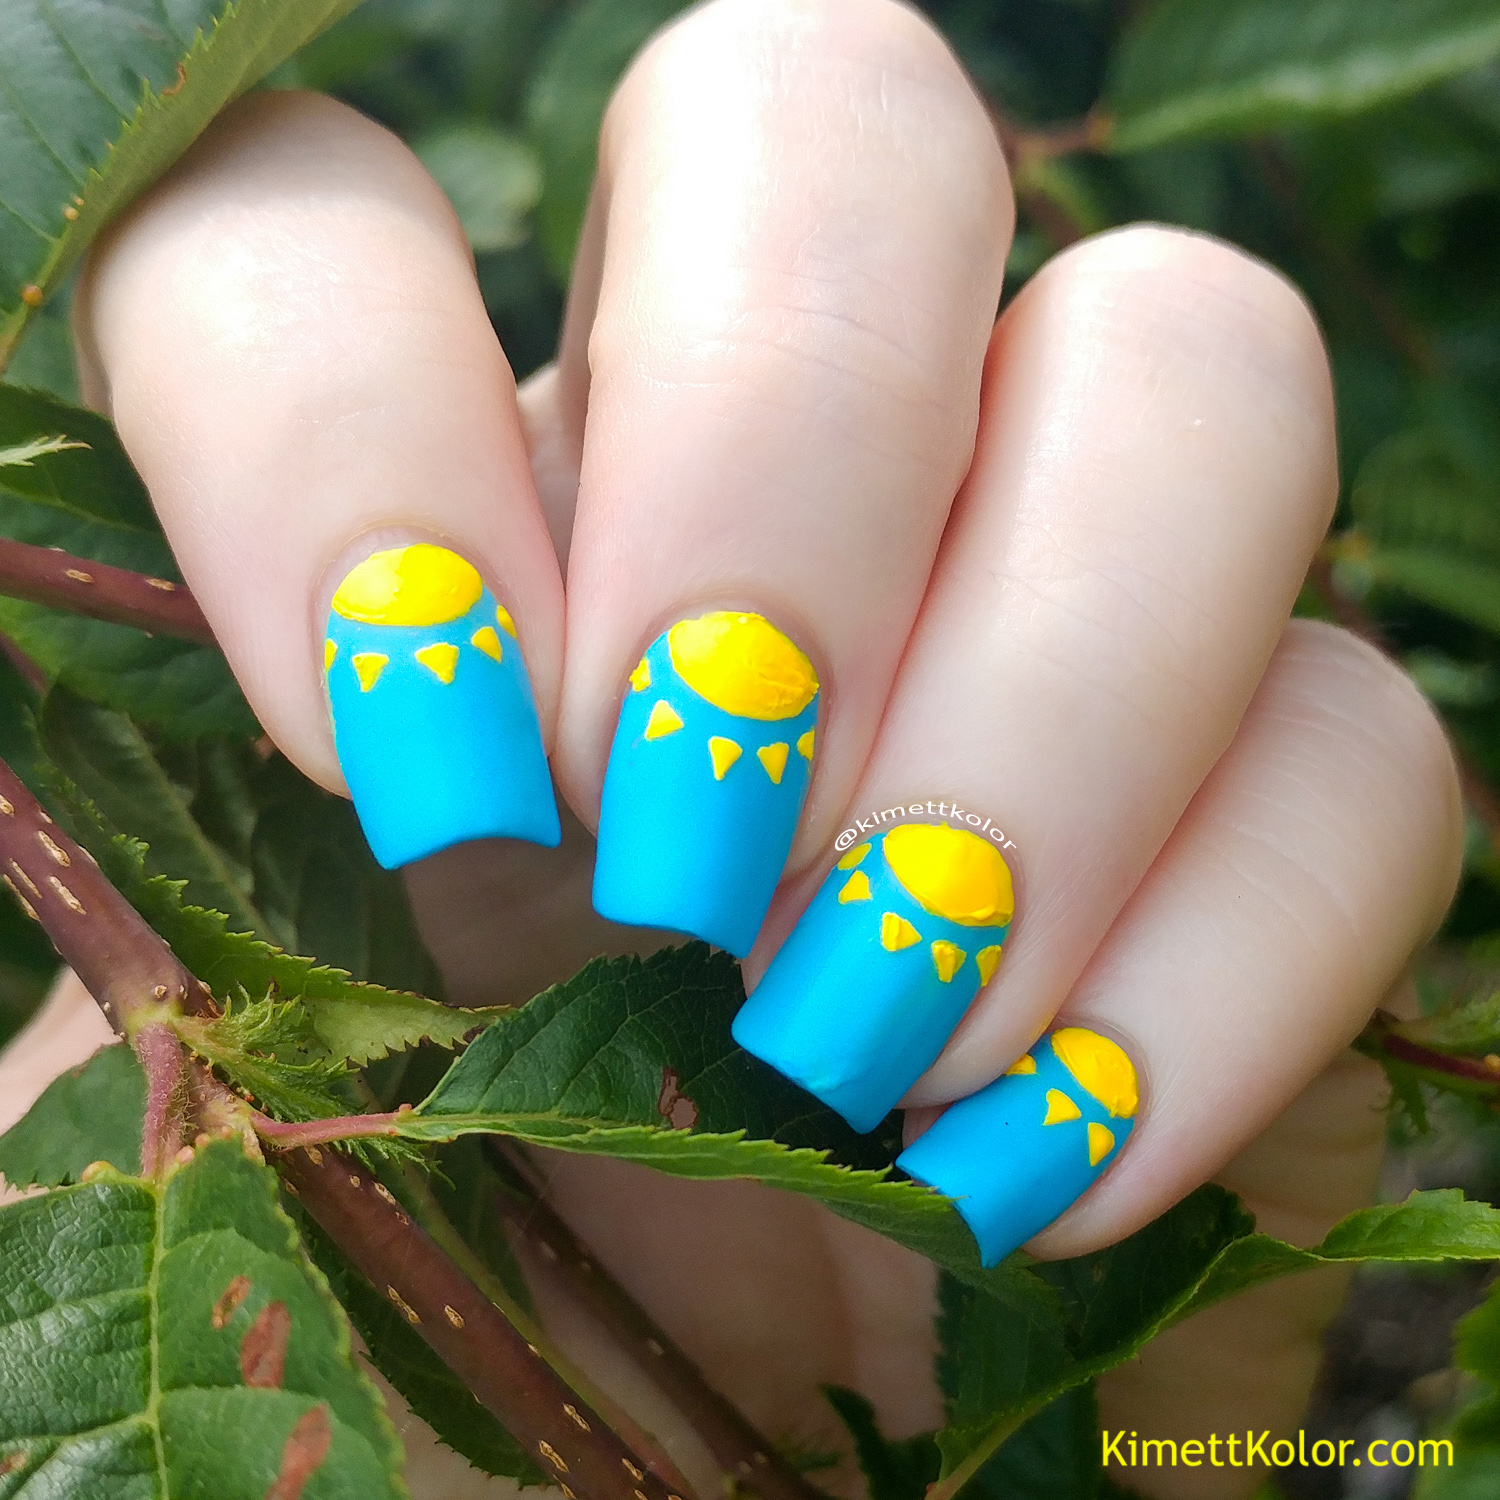 KimettKolor Neon Sunshine Nail Art